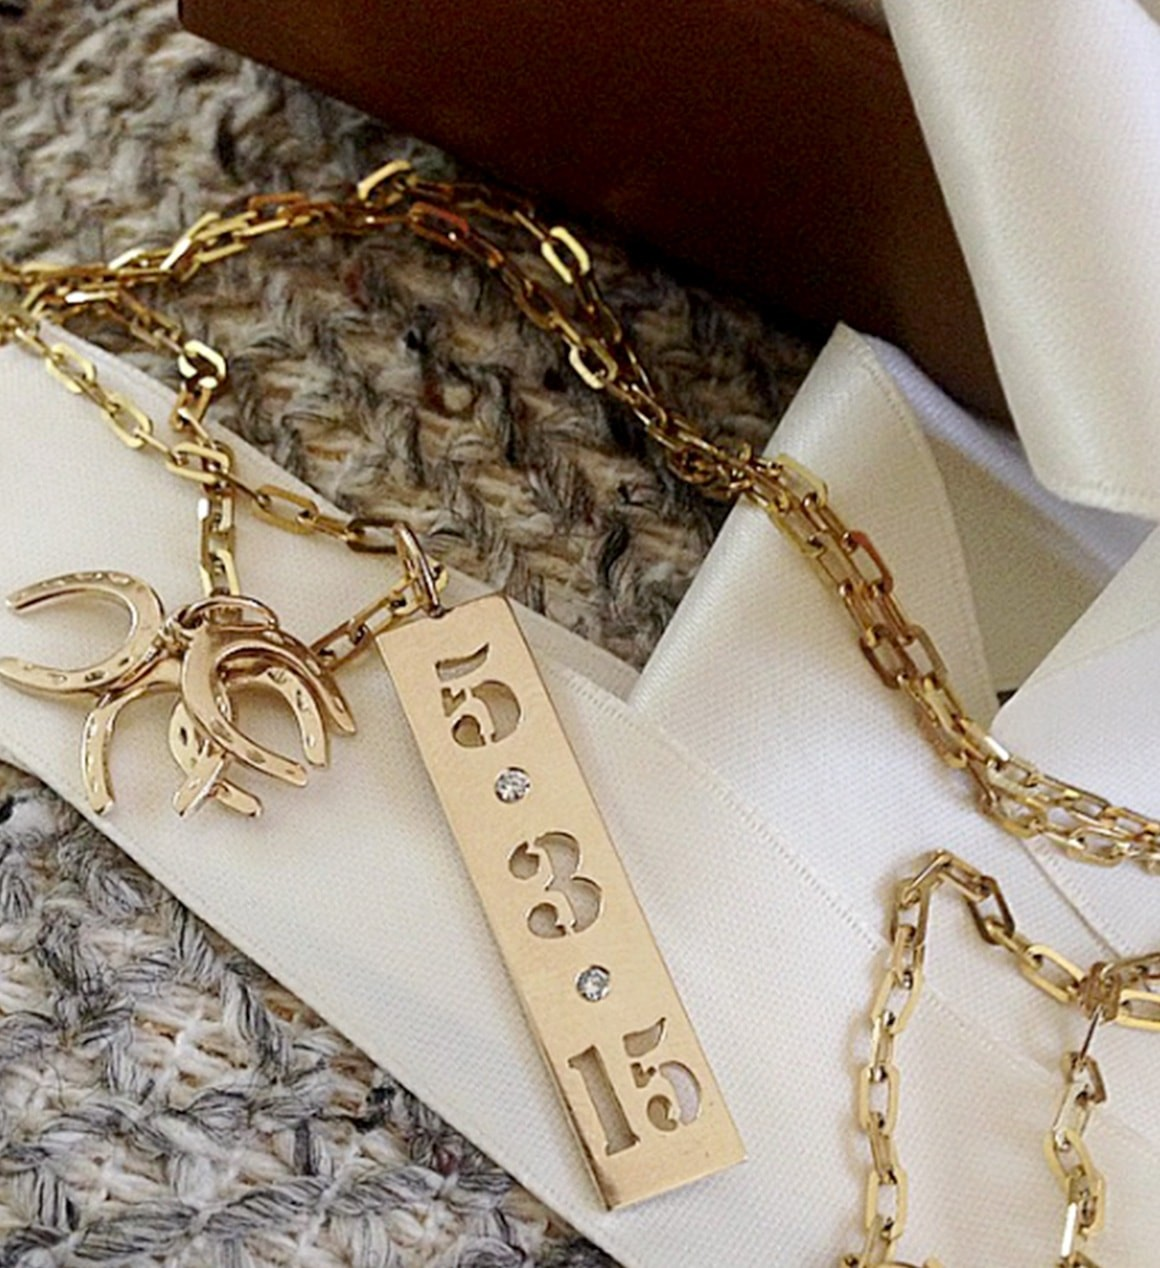 5 Clues to Help Identify the Date of Jewelry